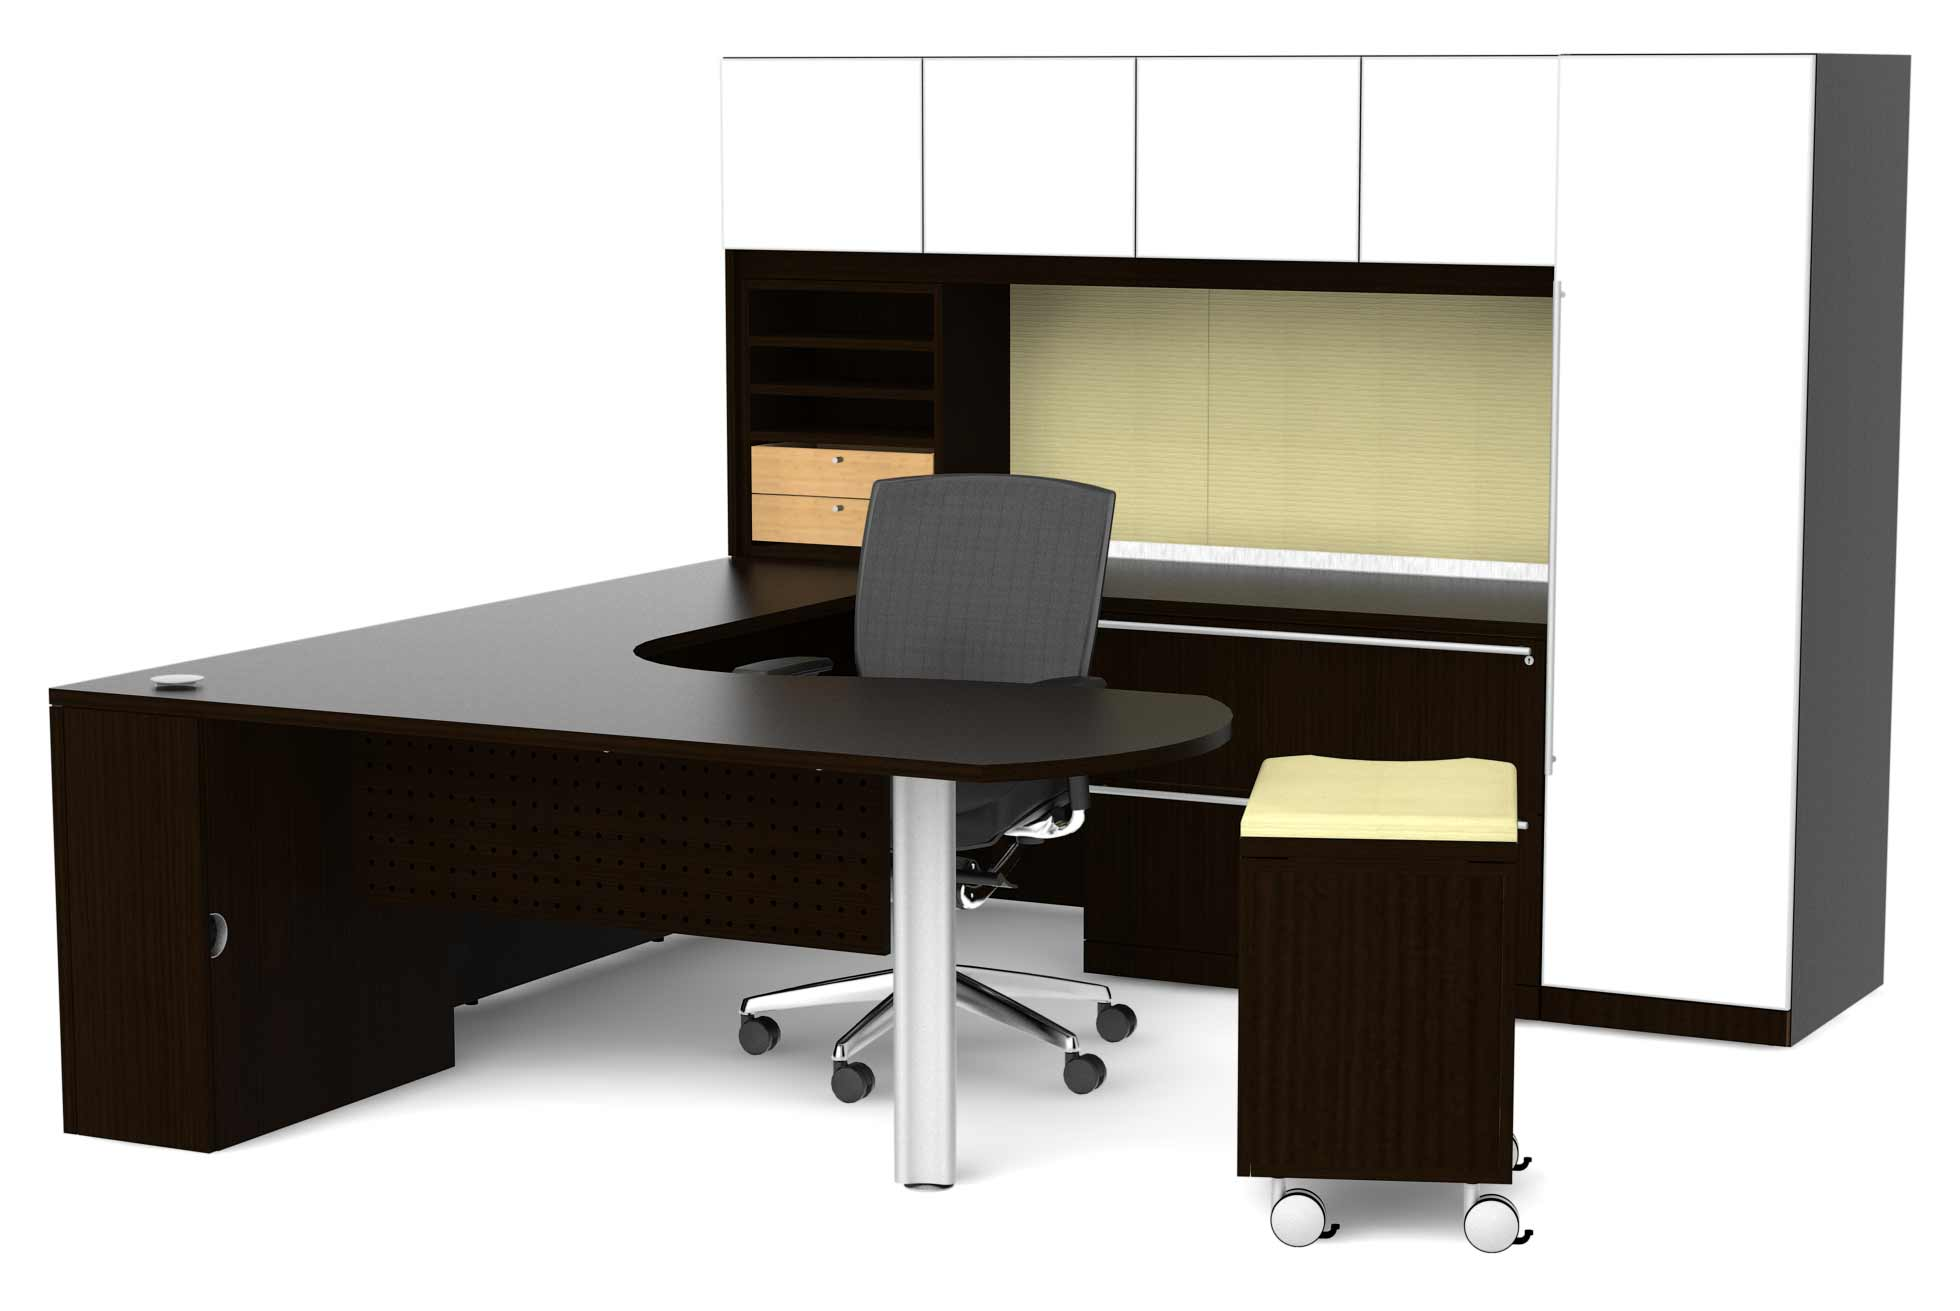 cherryman office furniture L-shaped desk system